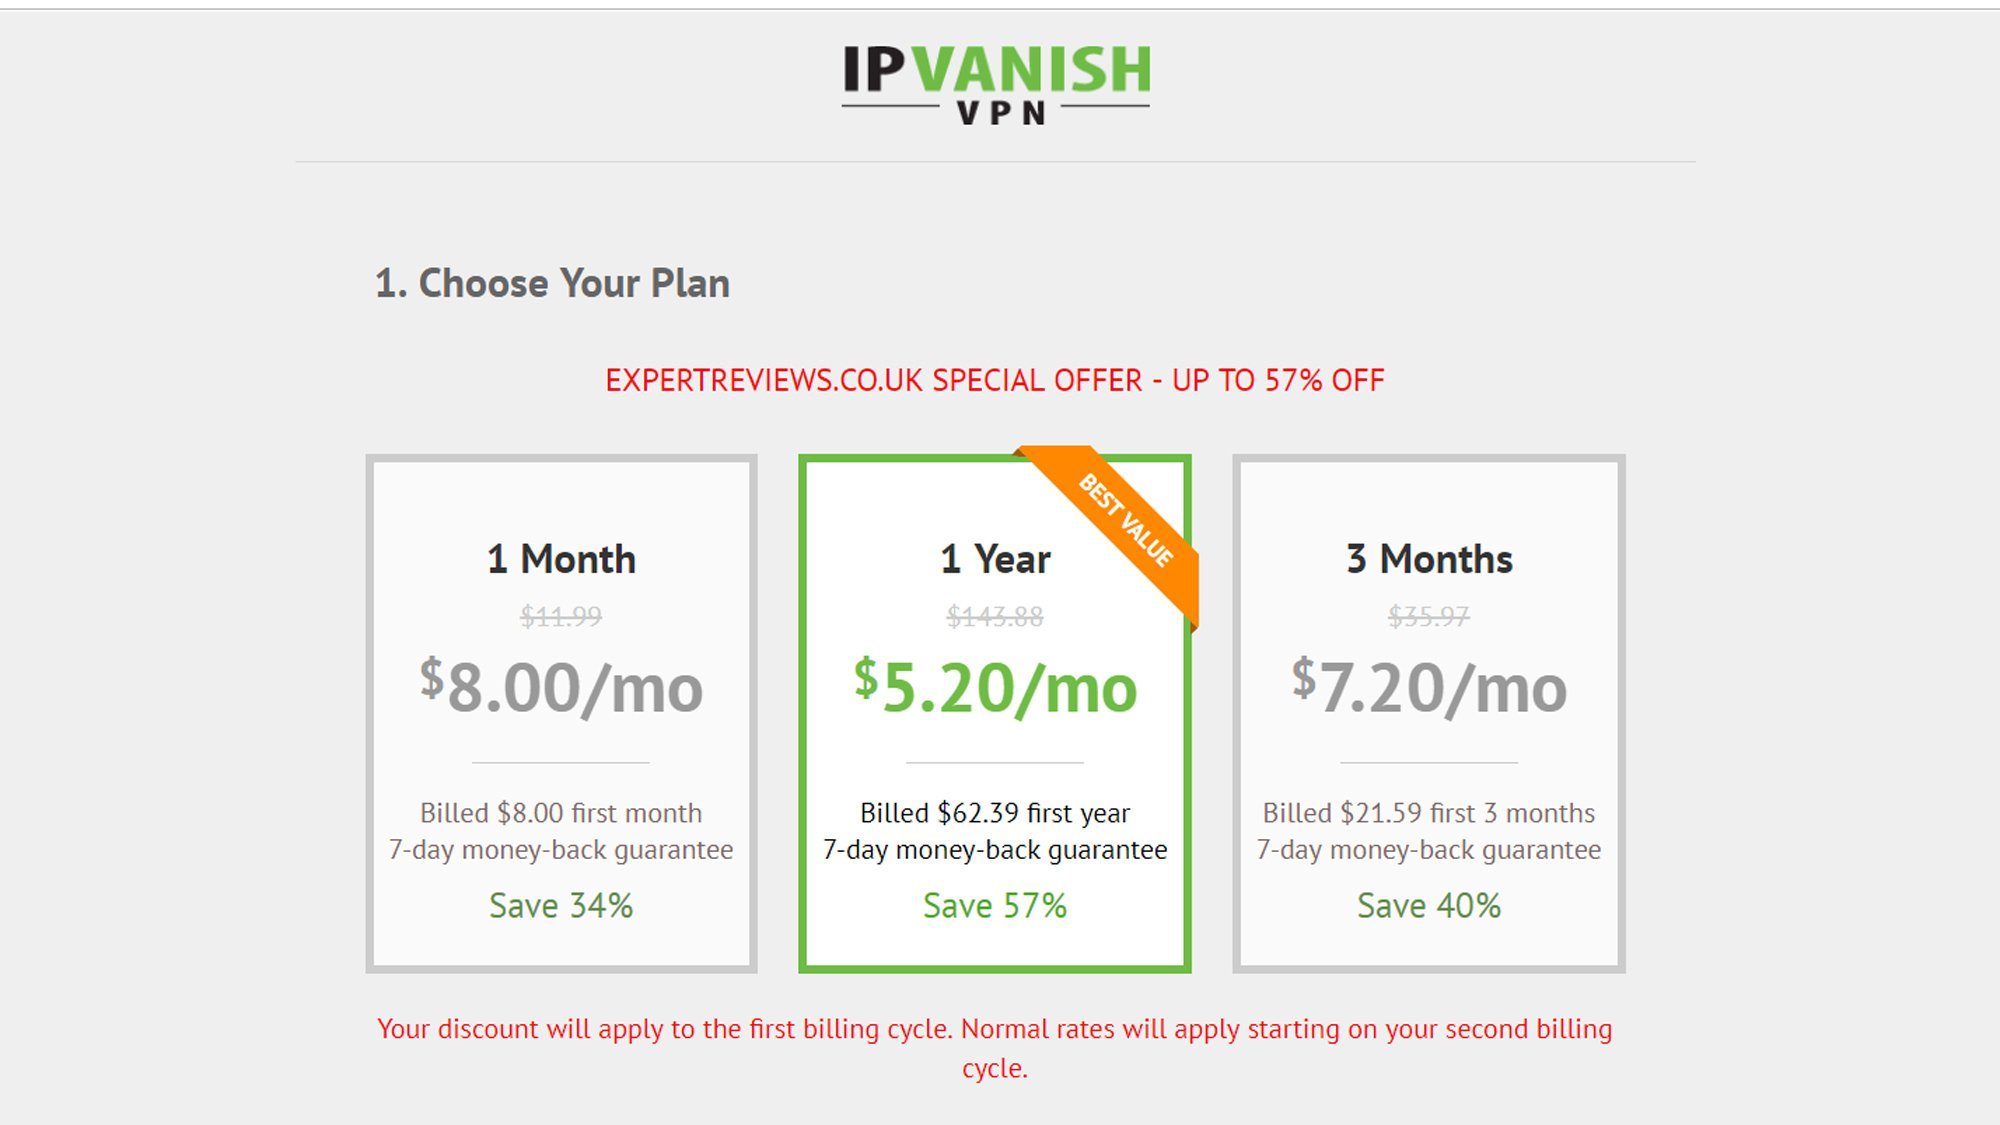 1 Year Warranty VPN Ip Vanish